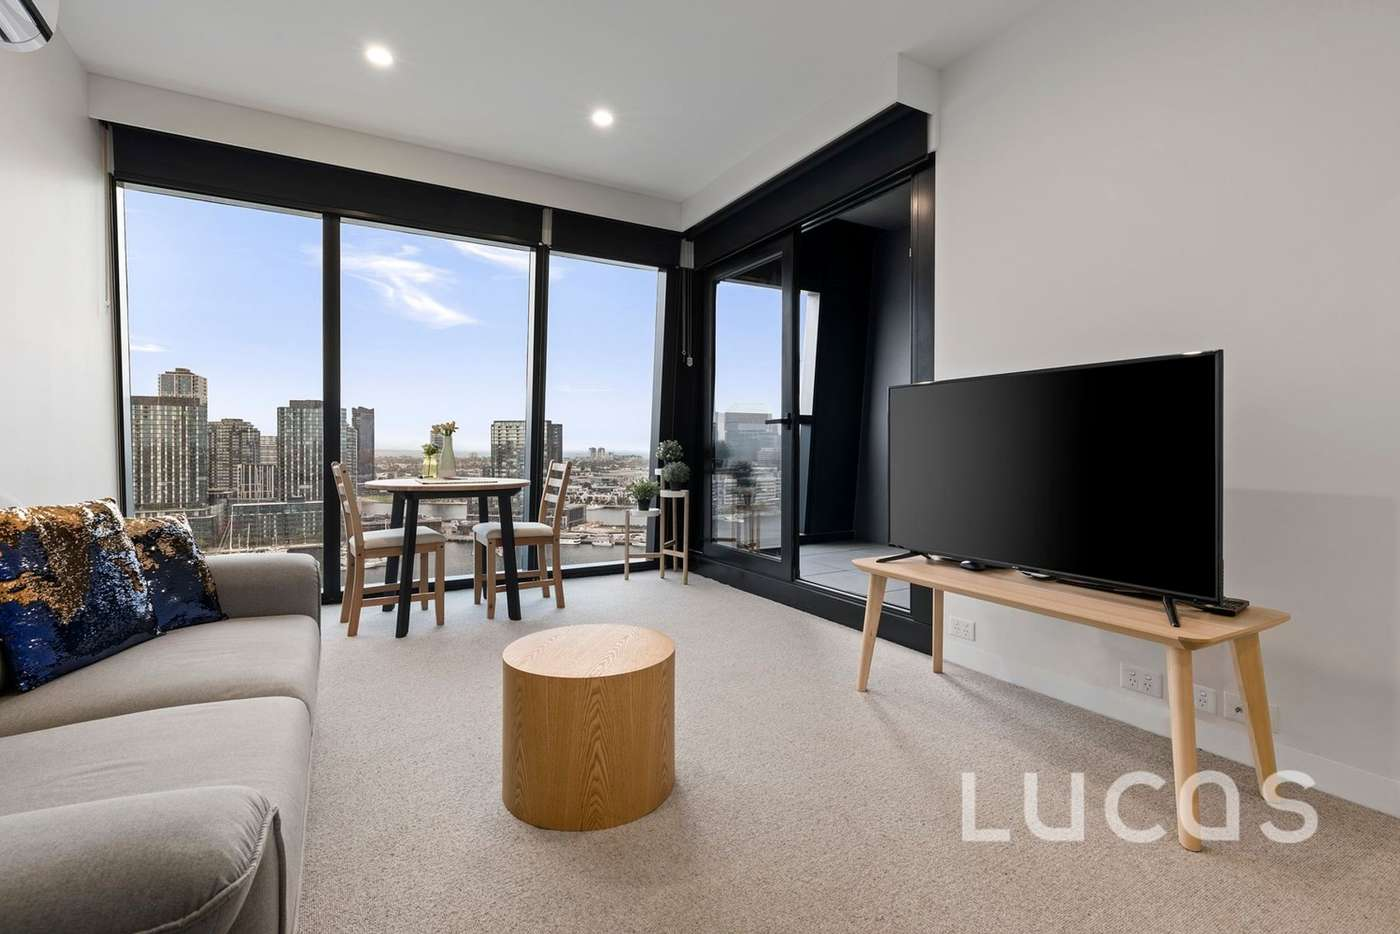 Main view of Homely apartment listing, 1214/8 Pearl River Road, Docklands VIC 3008